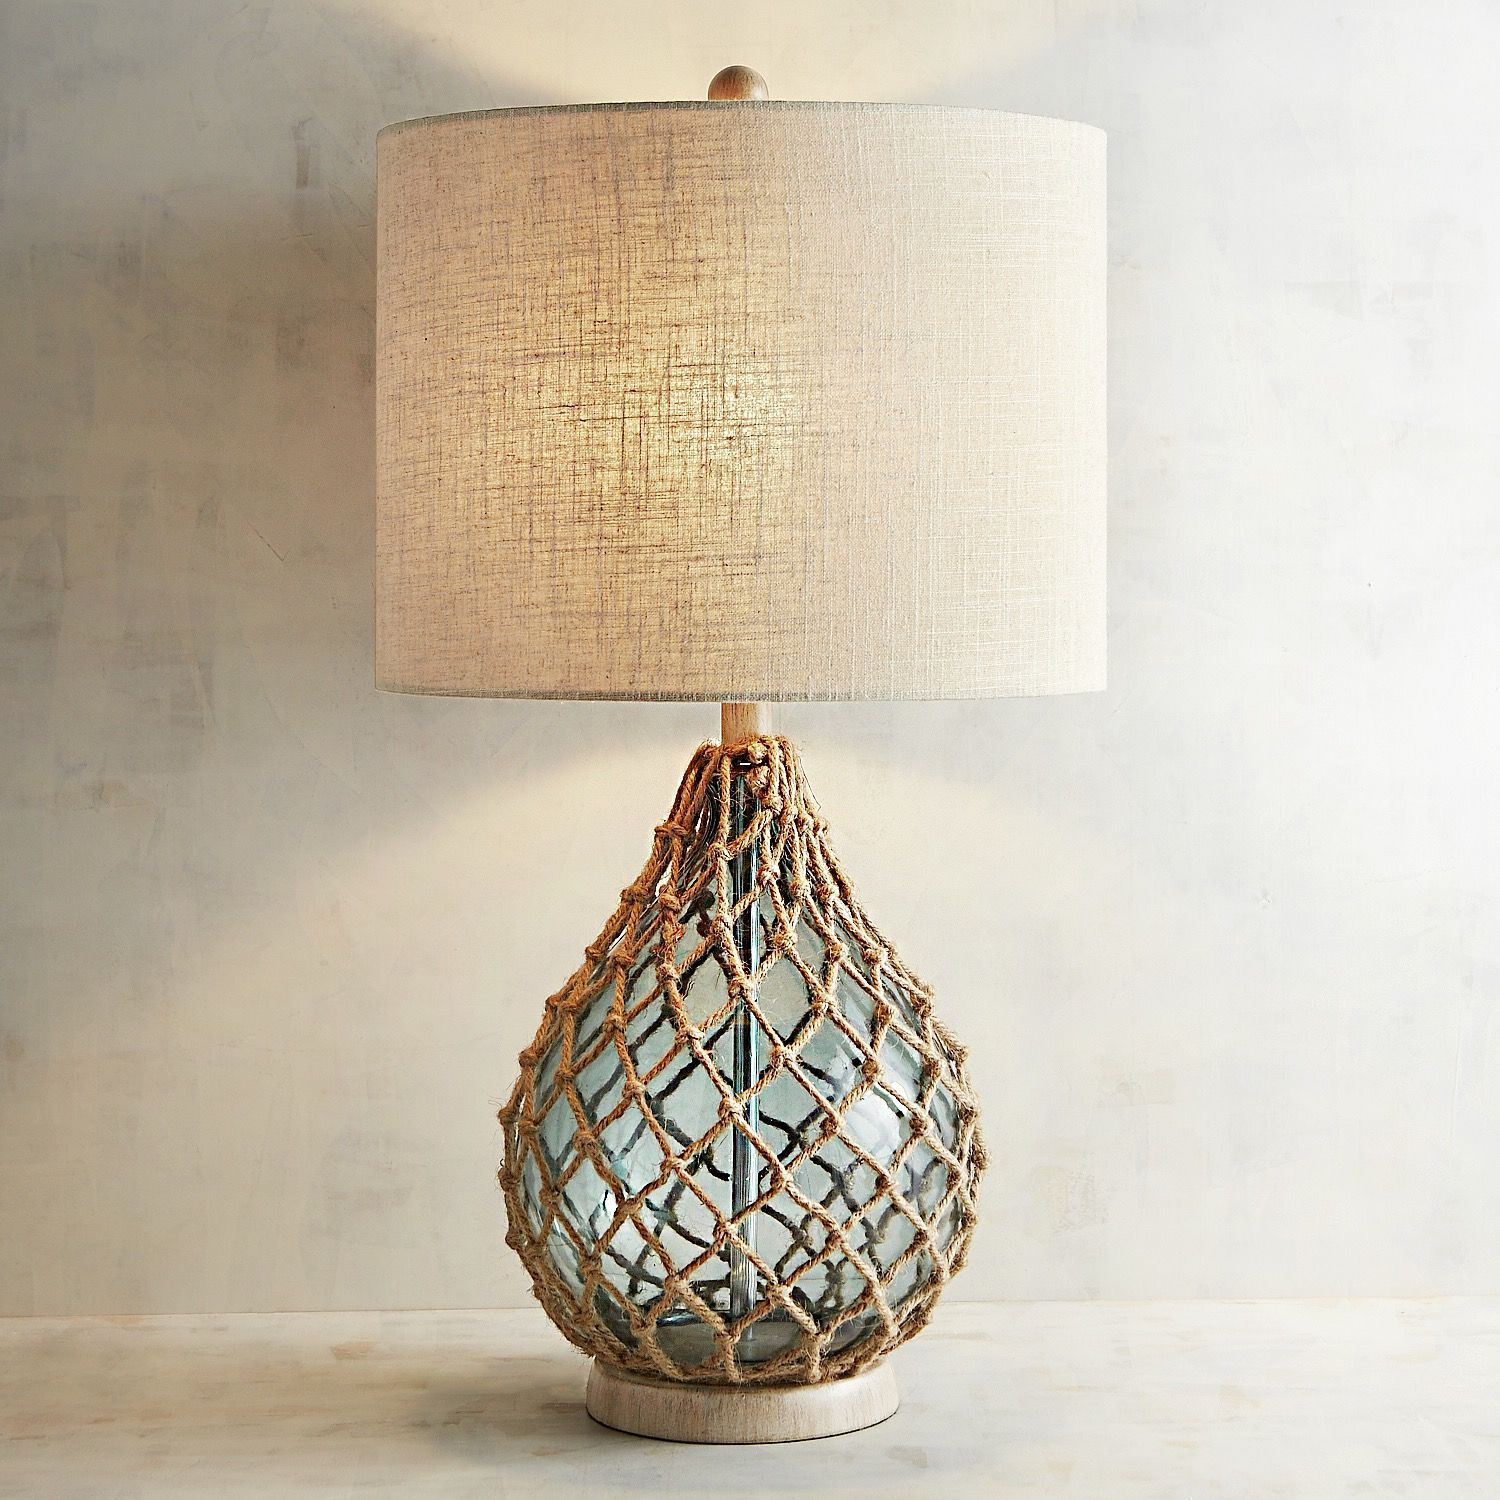 Pier One Table Lamps Unique Rope And Sea Glass Table Lamp Pier 1 Imports Pier One Table Lamps Decorating Design